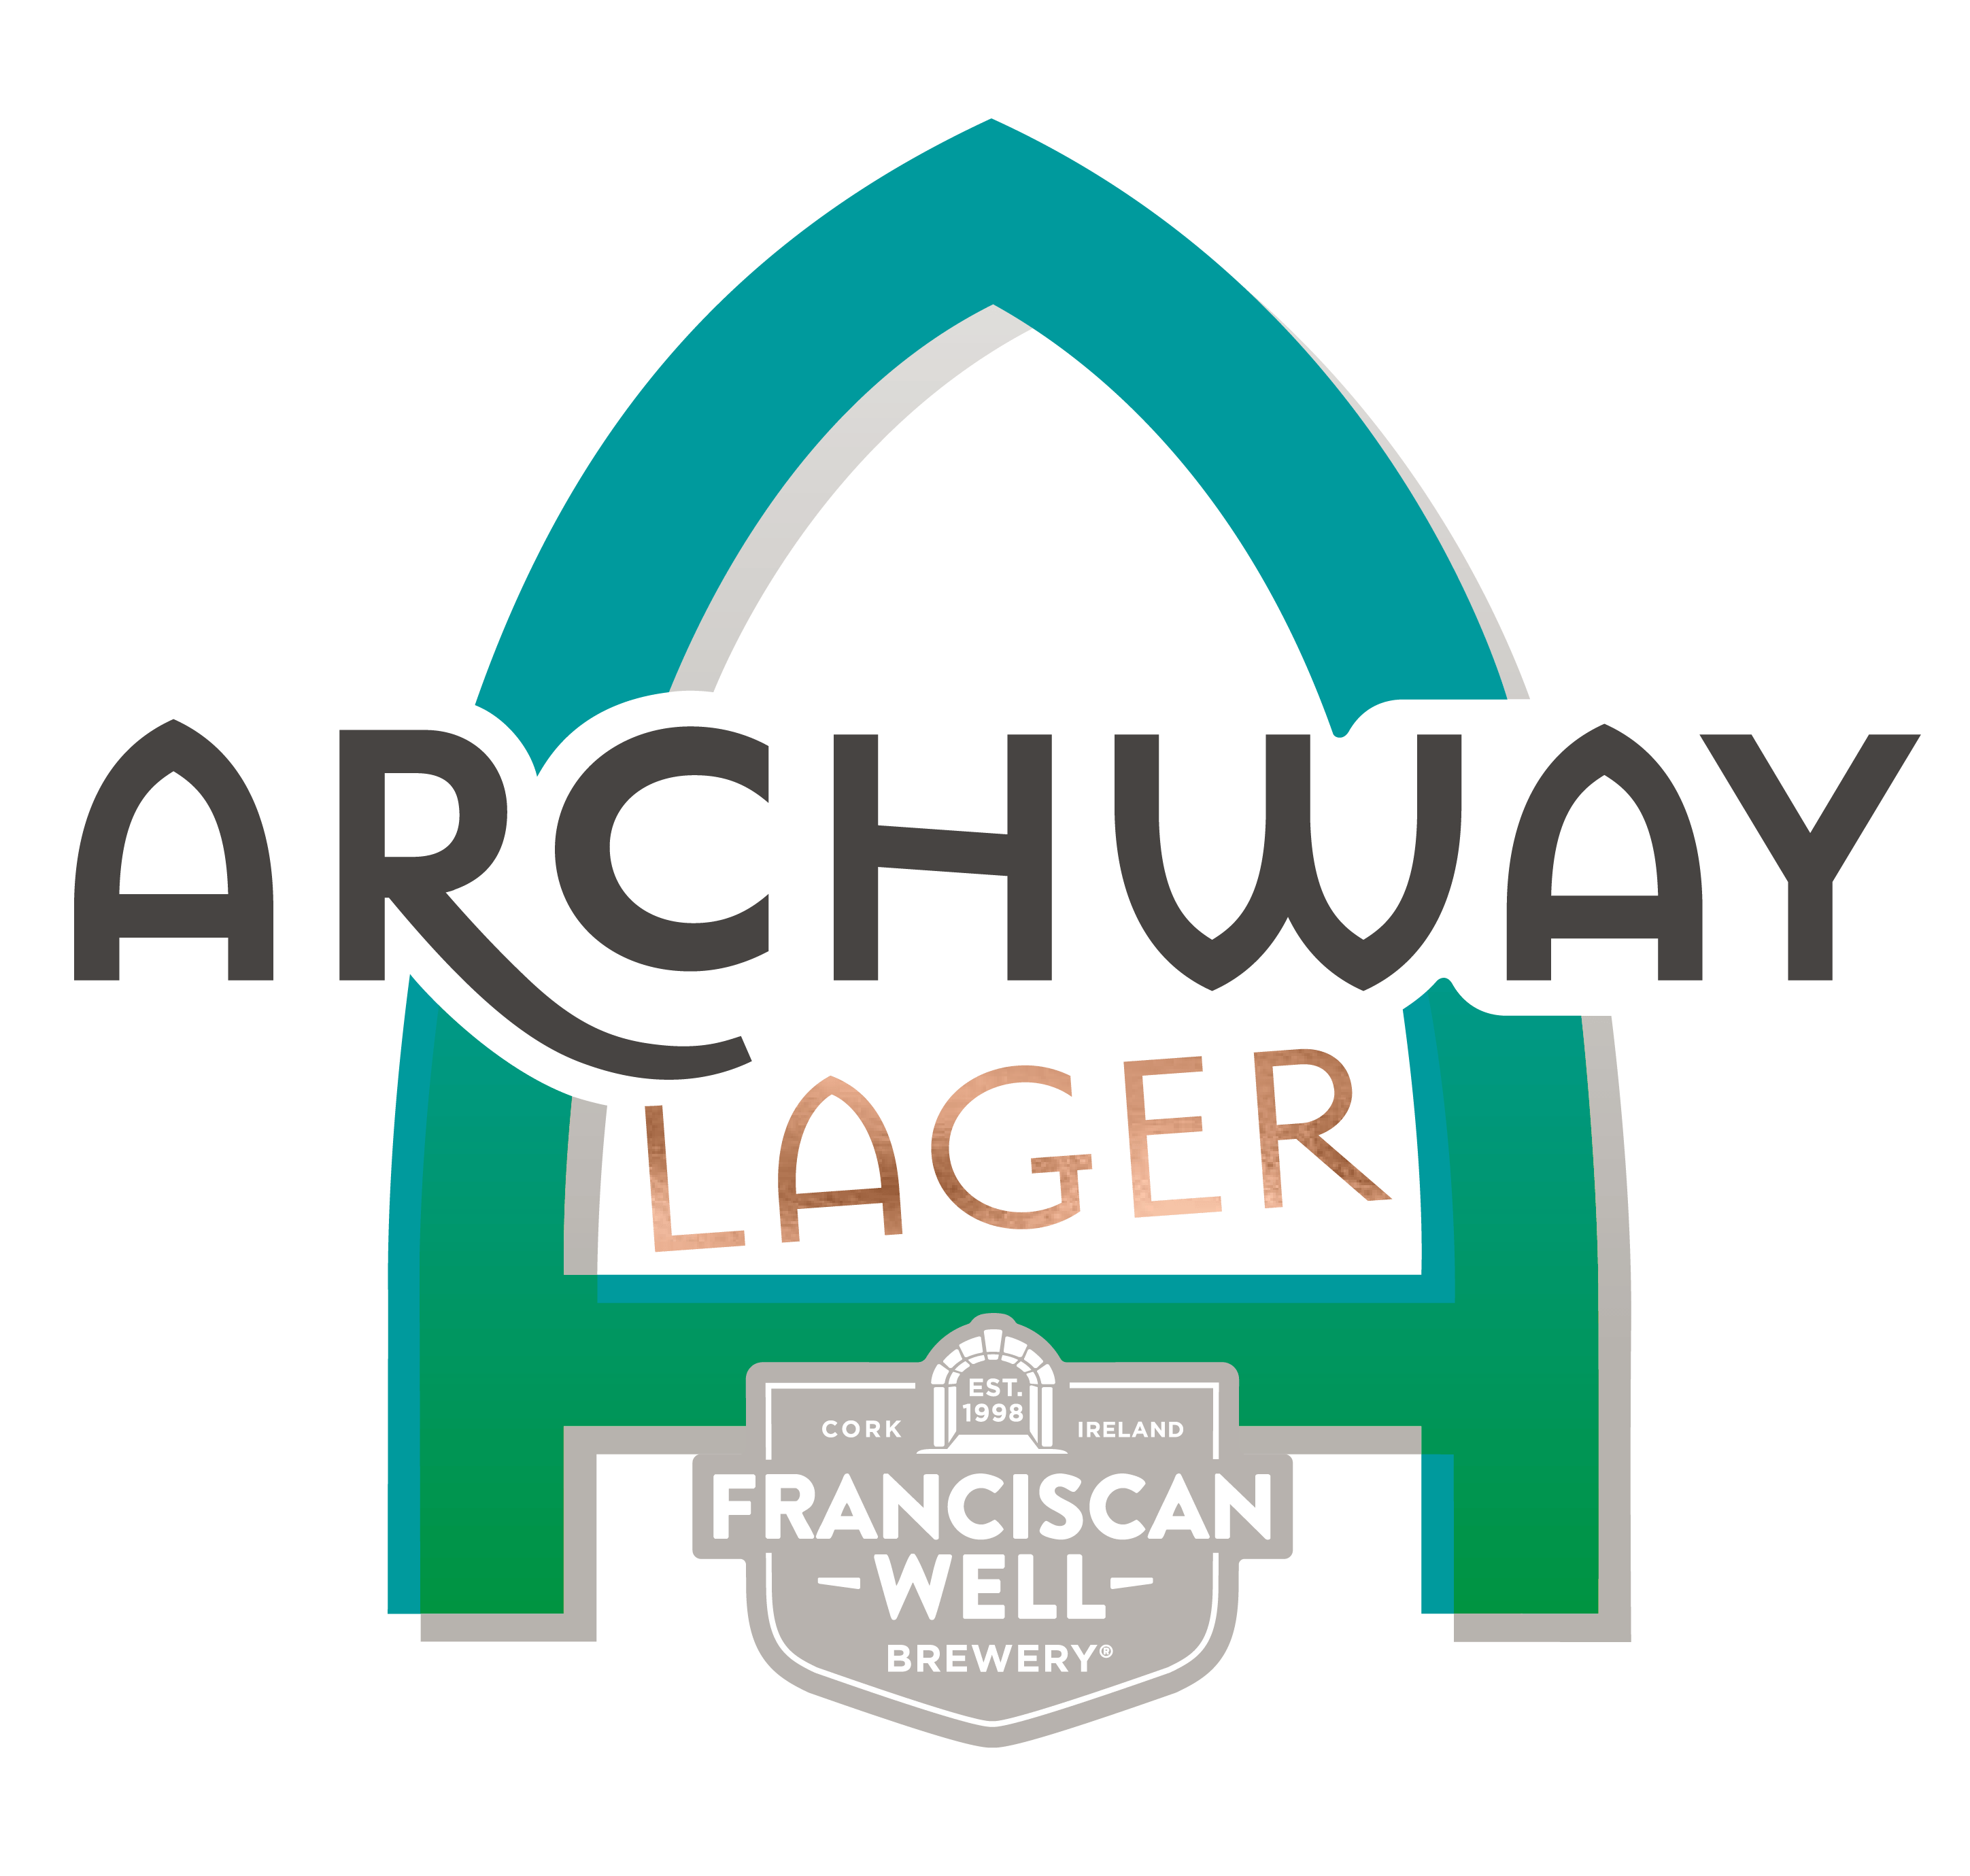 Archway Lager